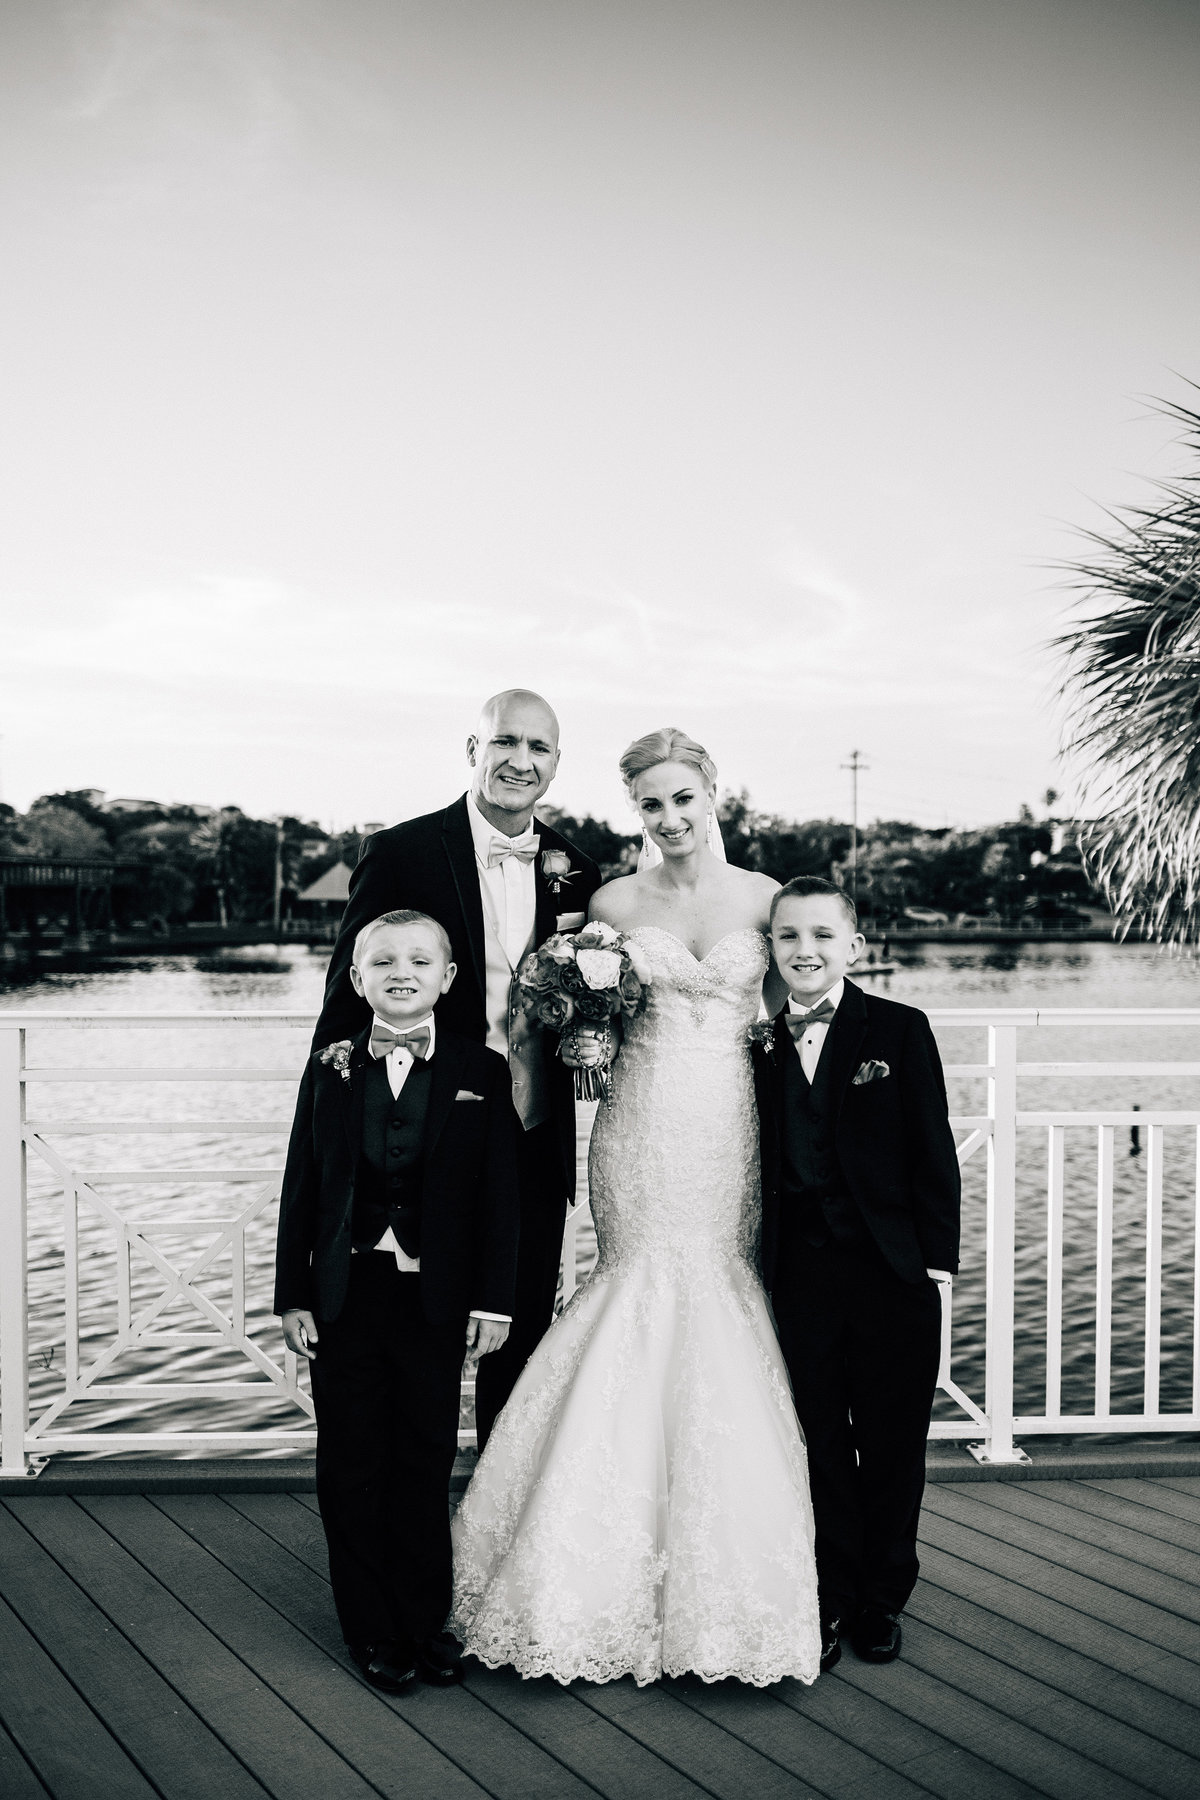 Kimberly_Hoyle_Photography_Milam_The_Back_Center_Melbourne_Wedding-49